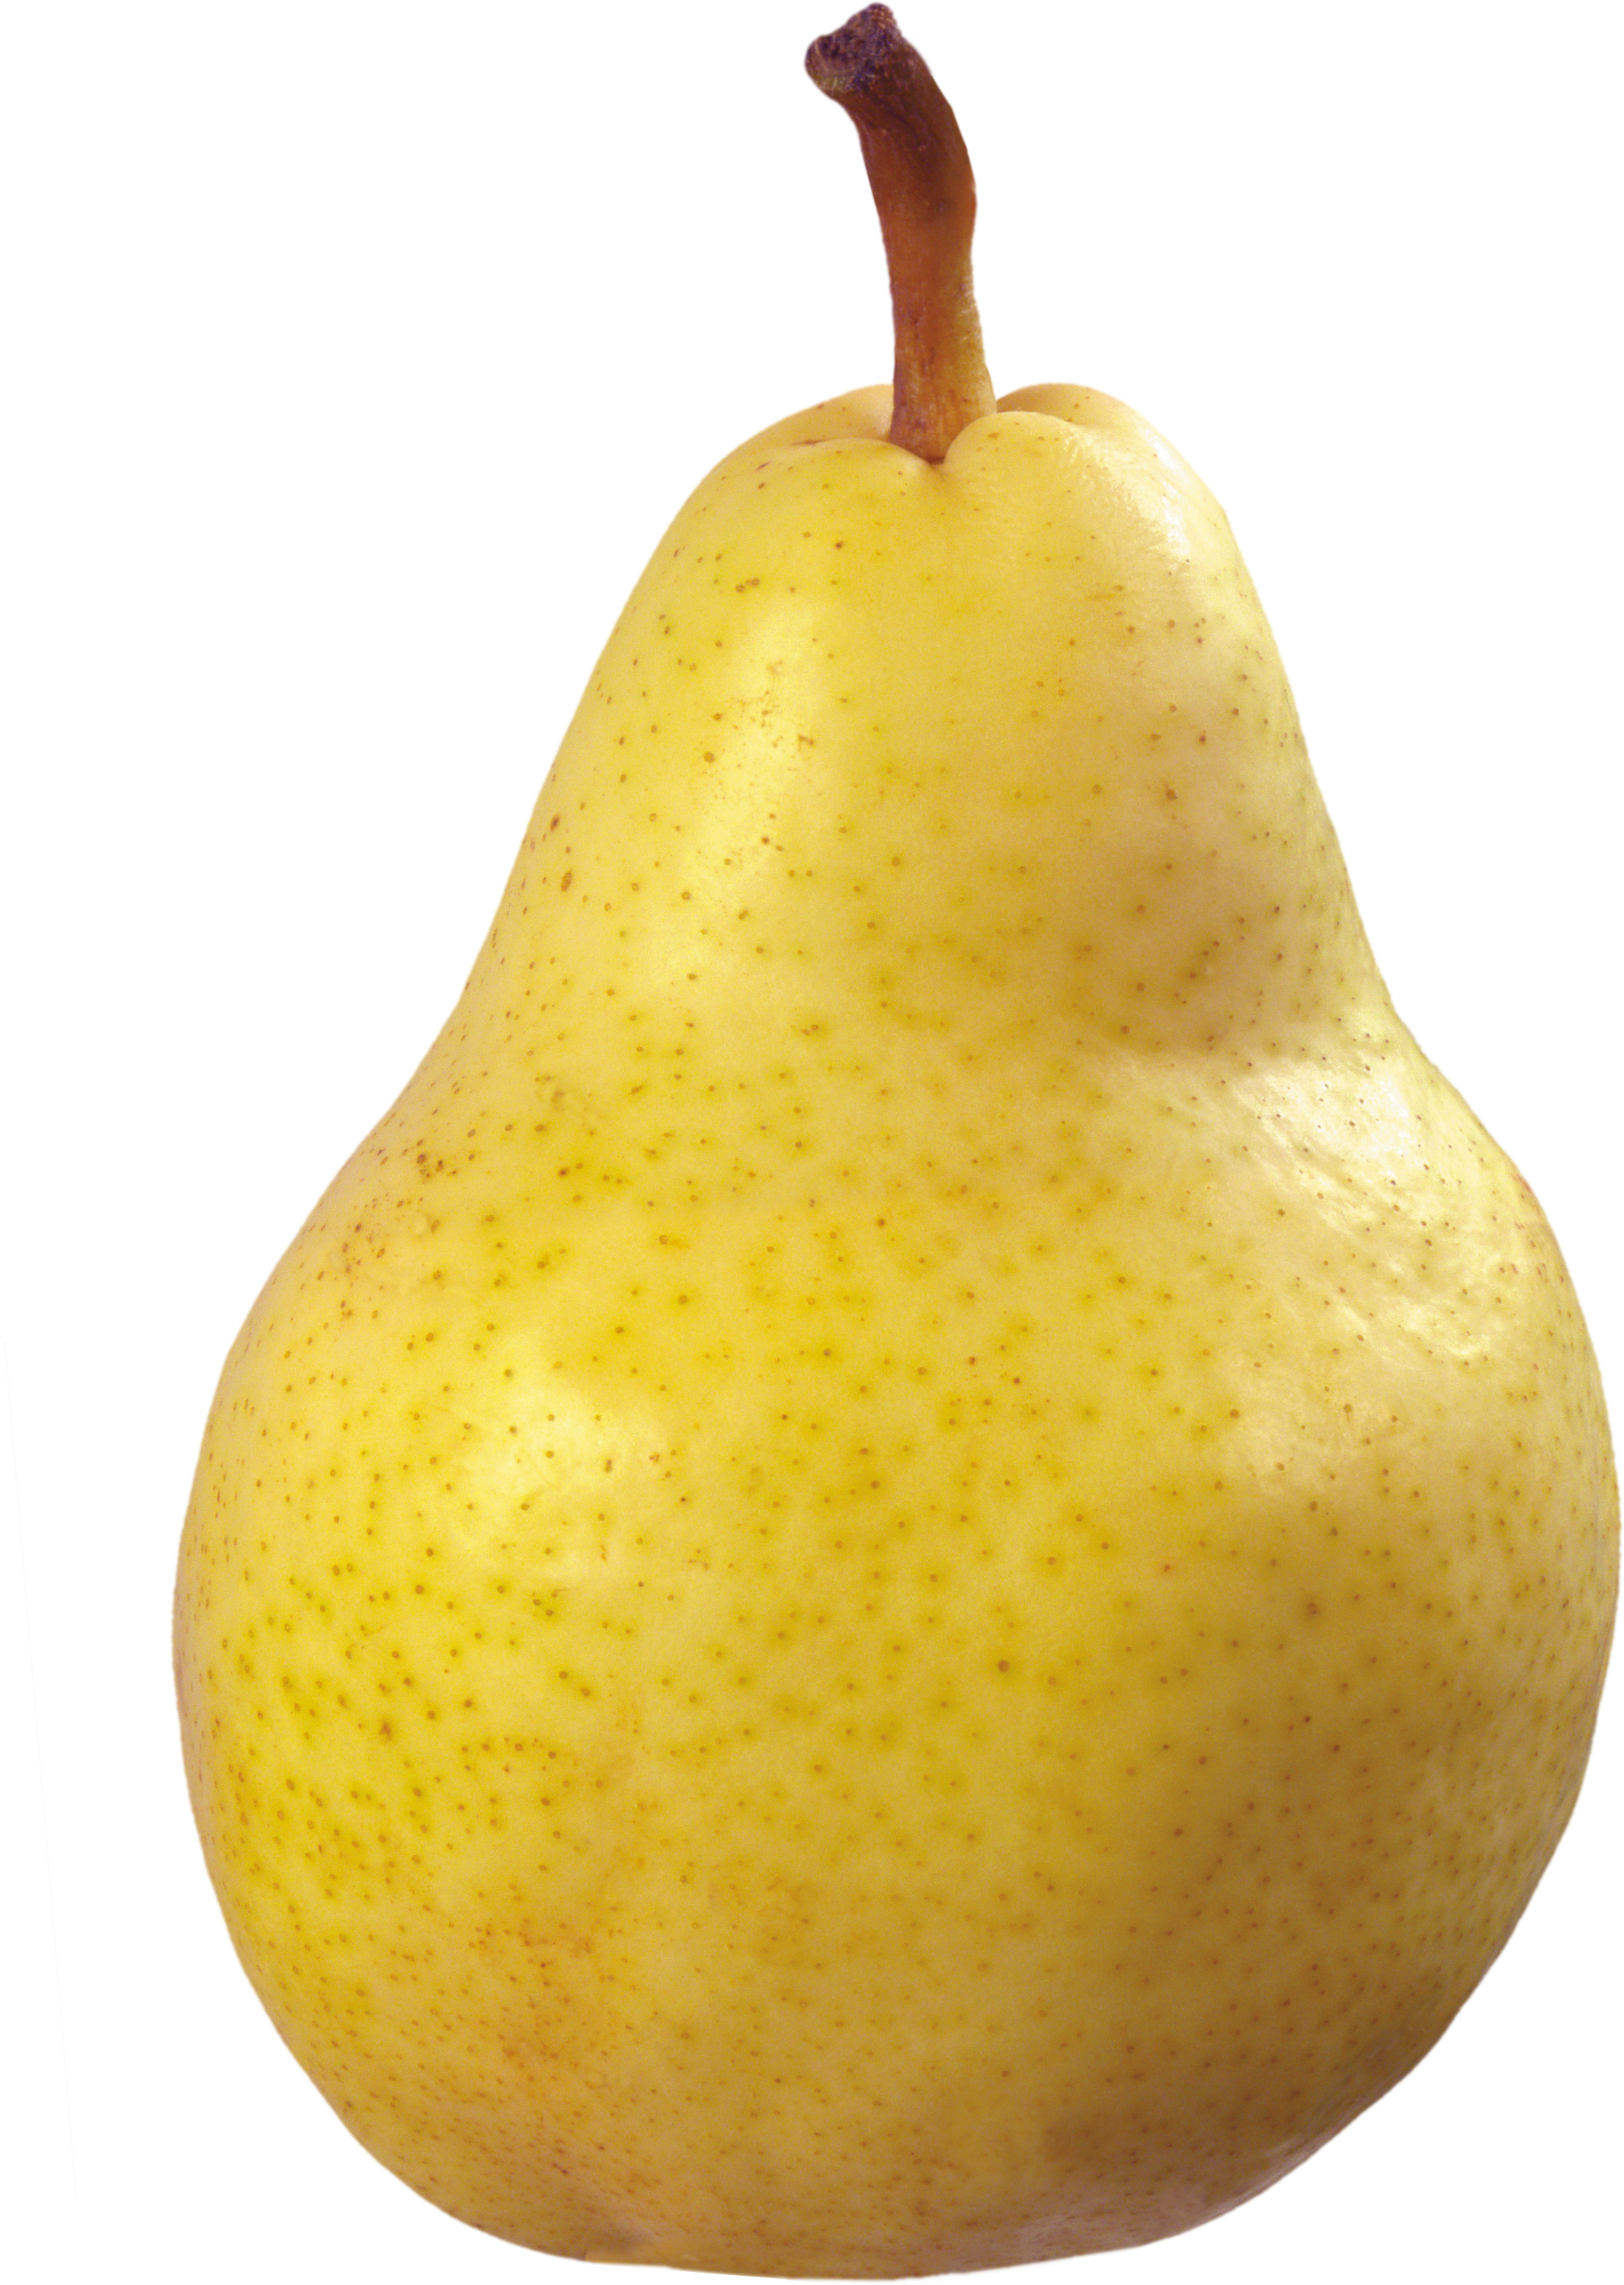 Pear Backgrounds on Wallpapers Vista